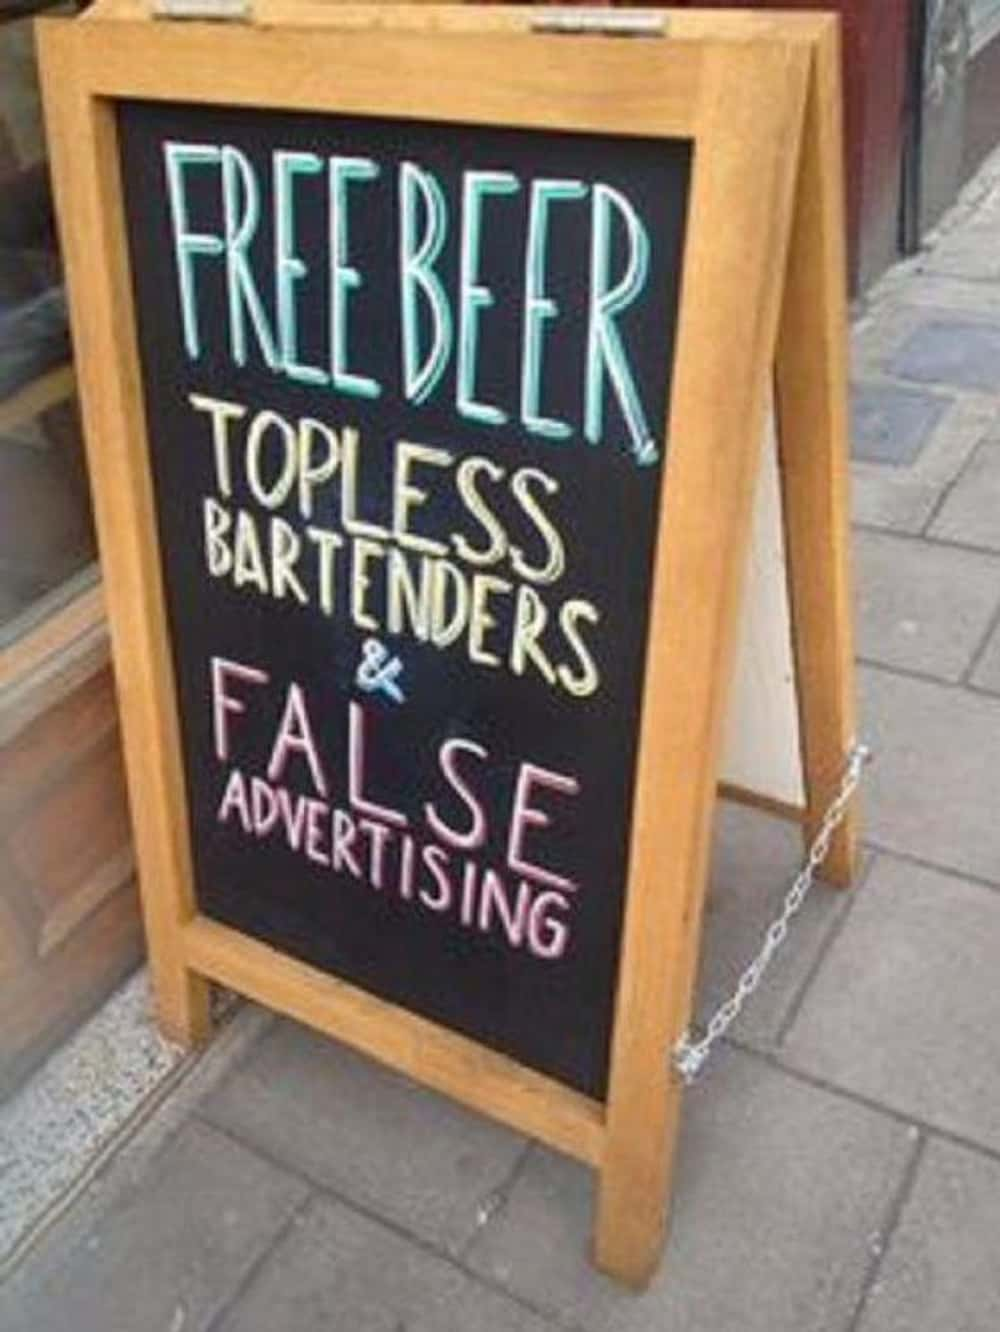 Honest Advertising is listed (or ranked) 1 on the list 25 Funny Bar Signs You'd Cheers To